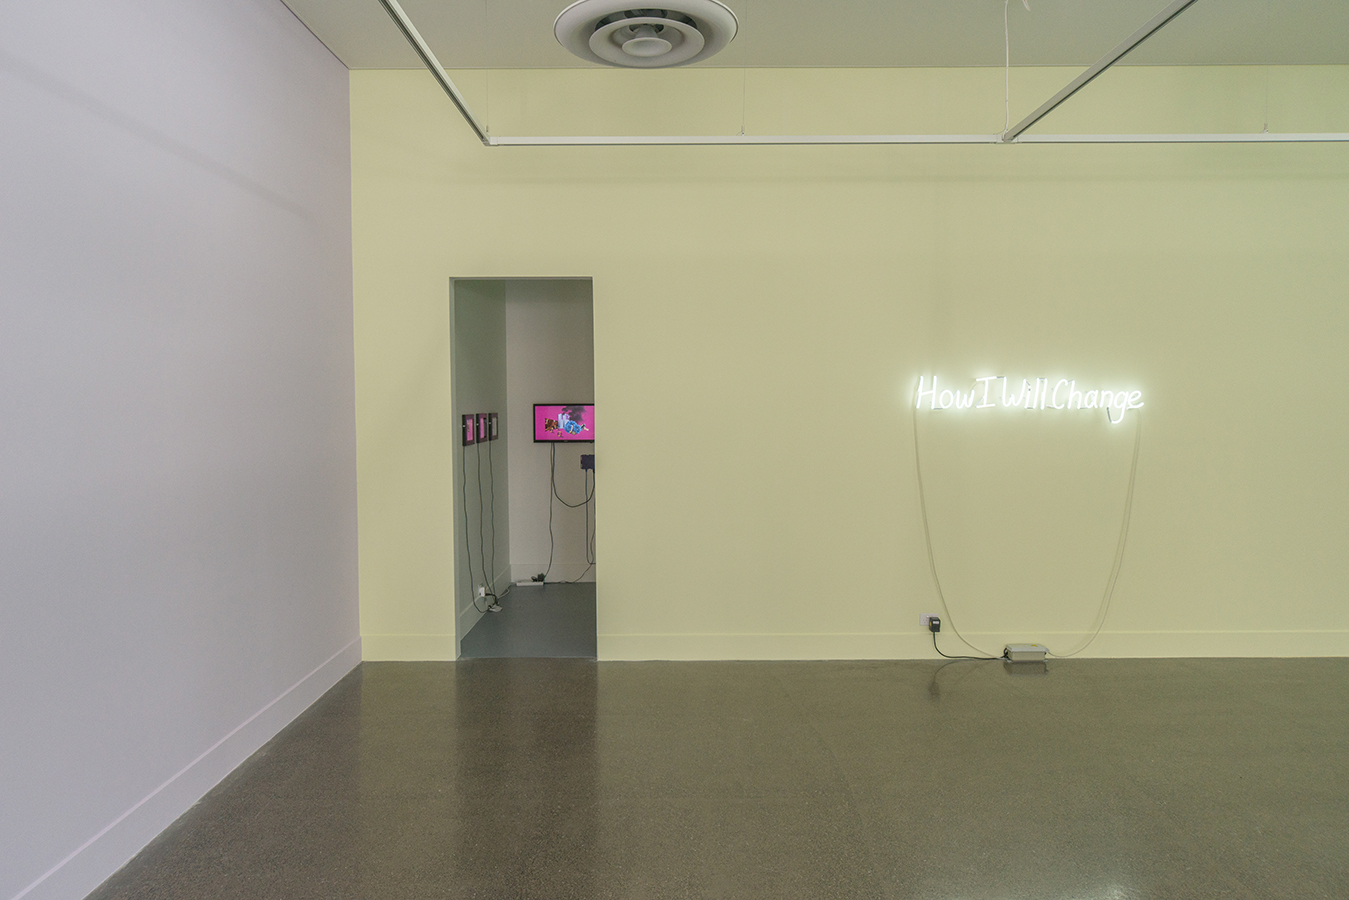 Kate Just, How I Will Change , Installation View, 2018,